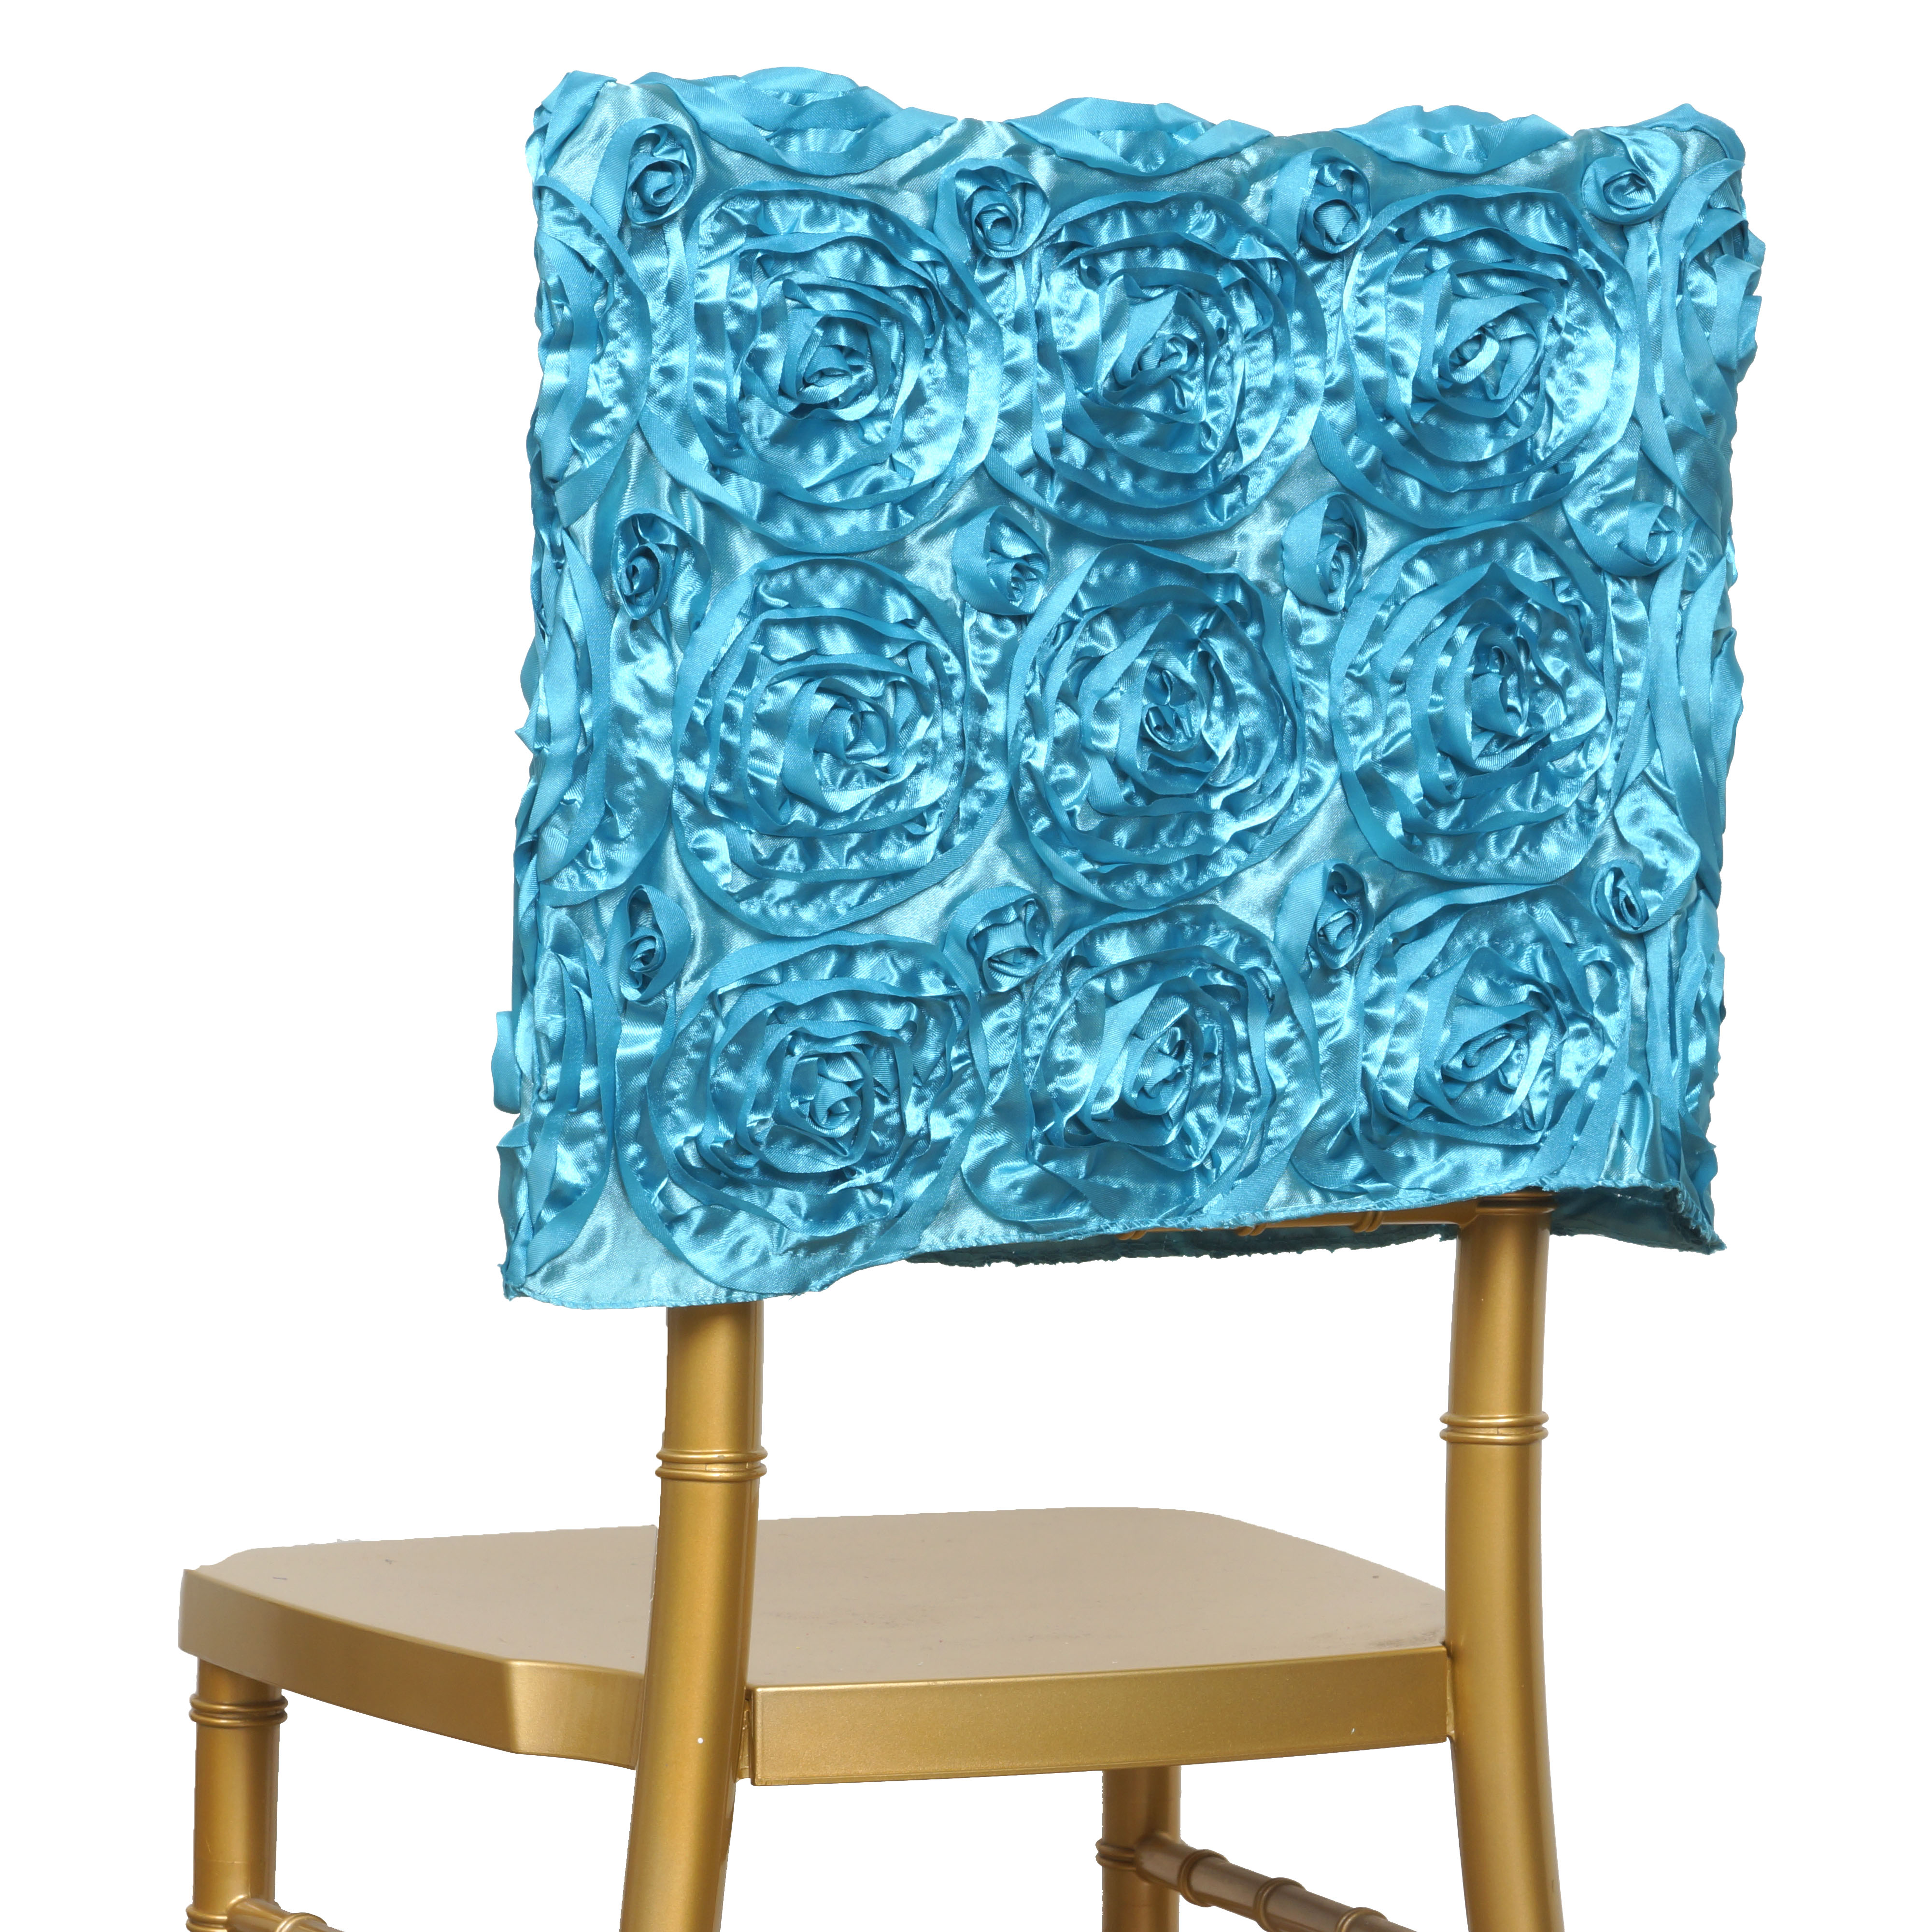 75 pcs chair covers square top caps with